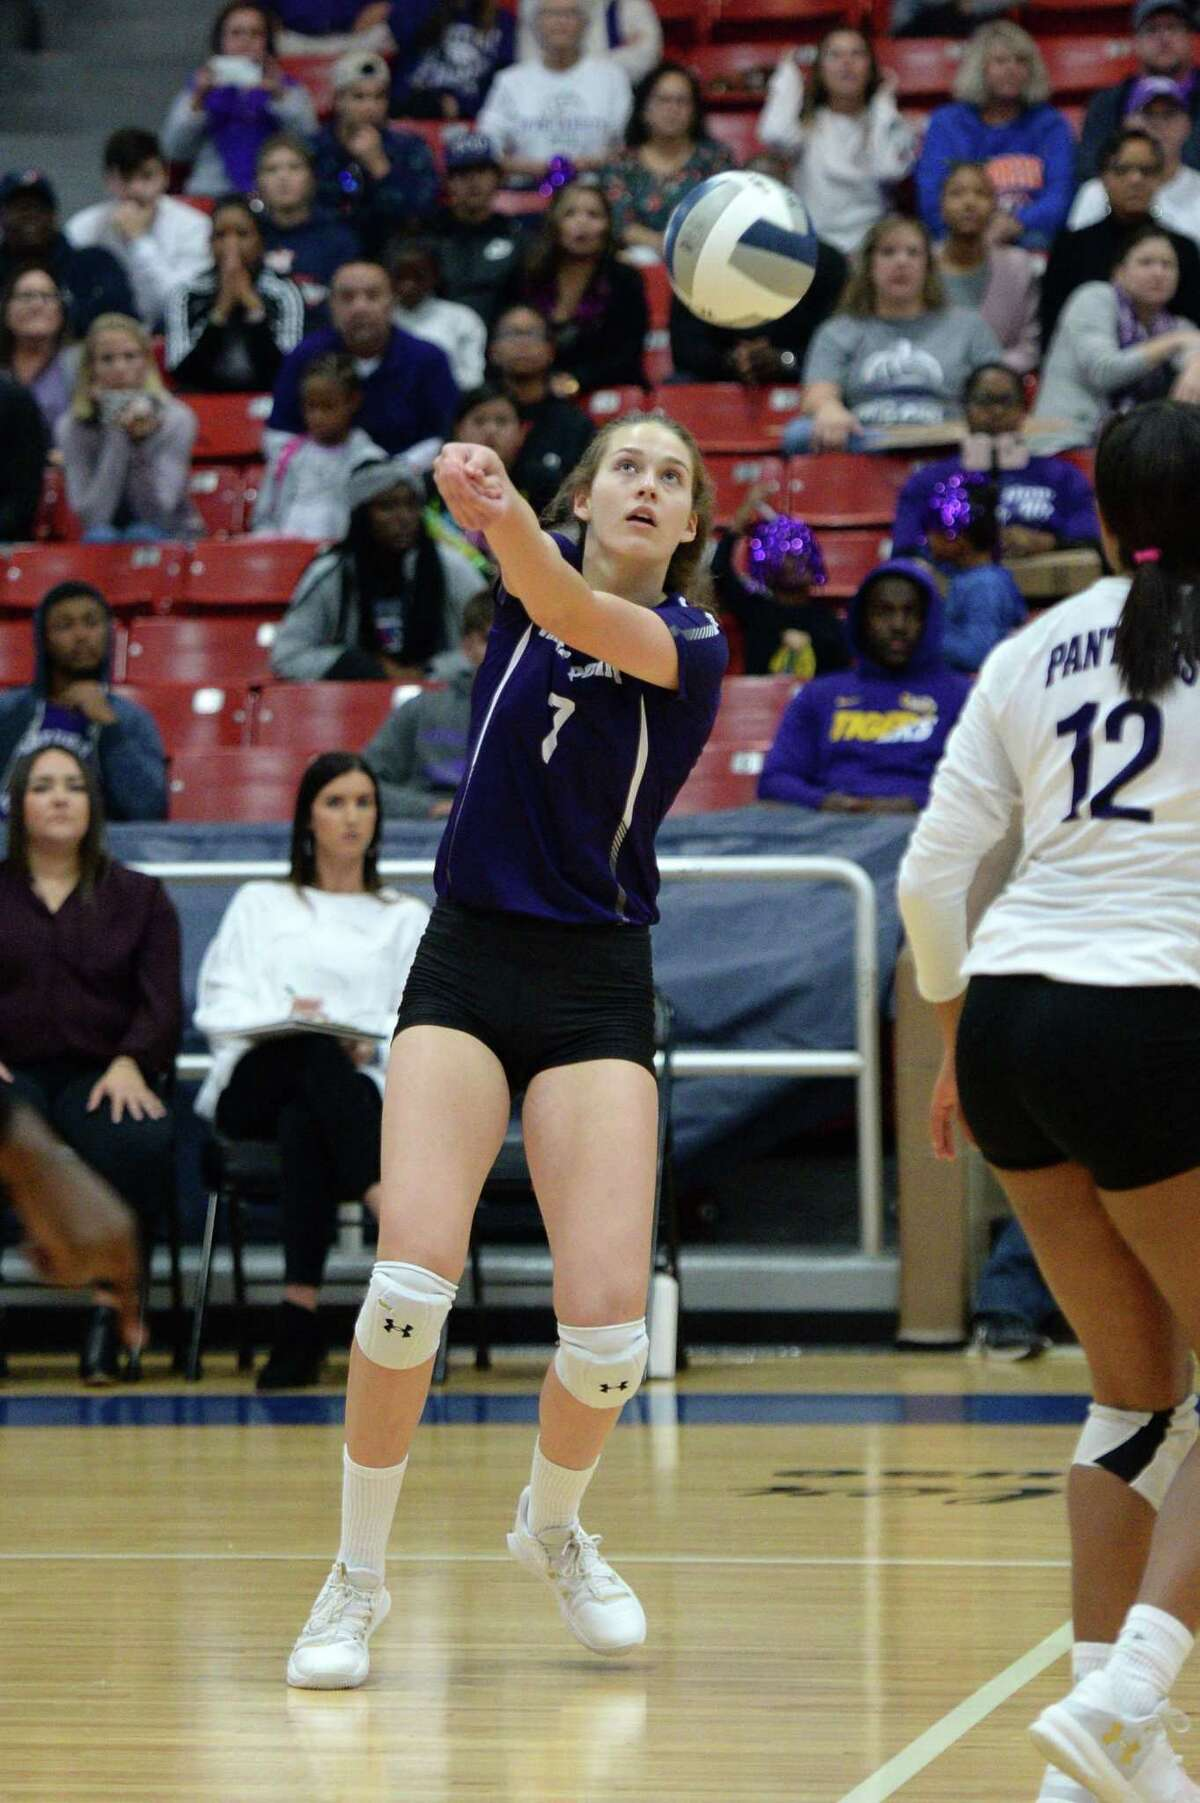 Sydney Jordan (7) of Ridge Point digs for a ball during the first set of the Region III-6A Final volleyball match between the Ridge Point Panthers and the Cy-Fair Bobcats on Saturday, November 16, 2019 at Wheeler Fieldhouse, Sugar Land, TX.